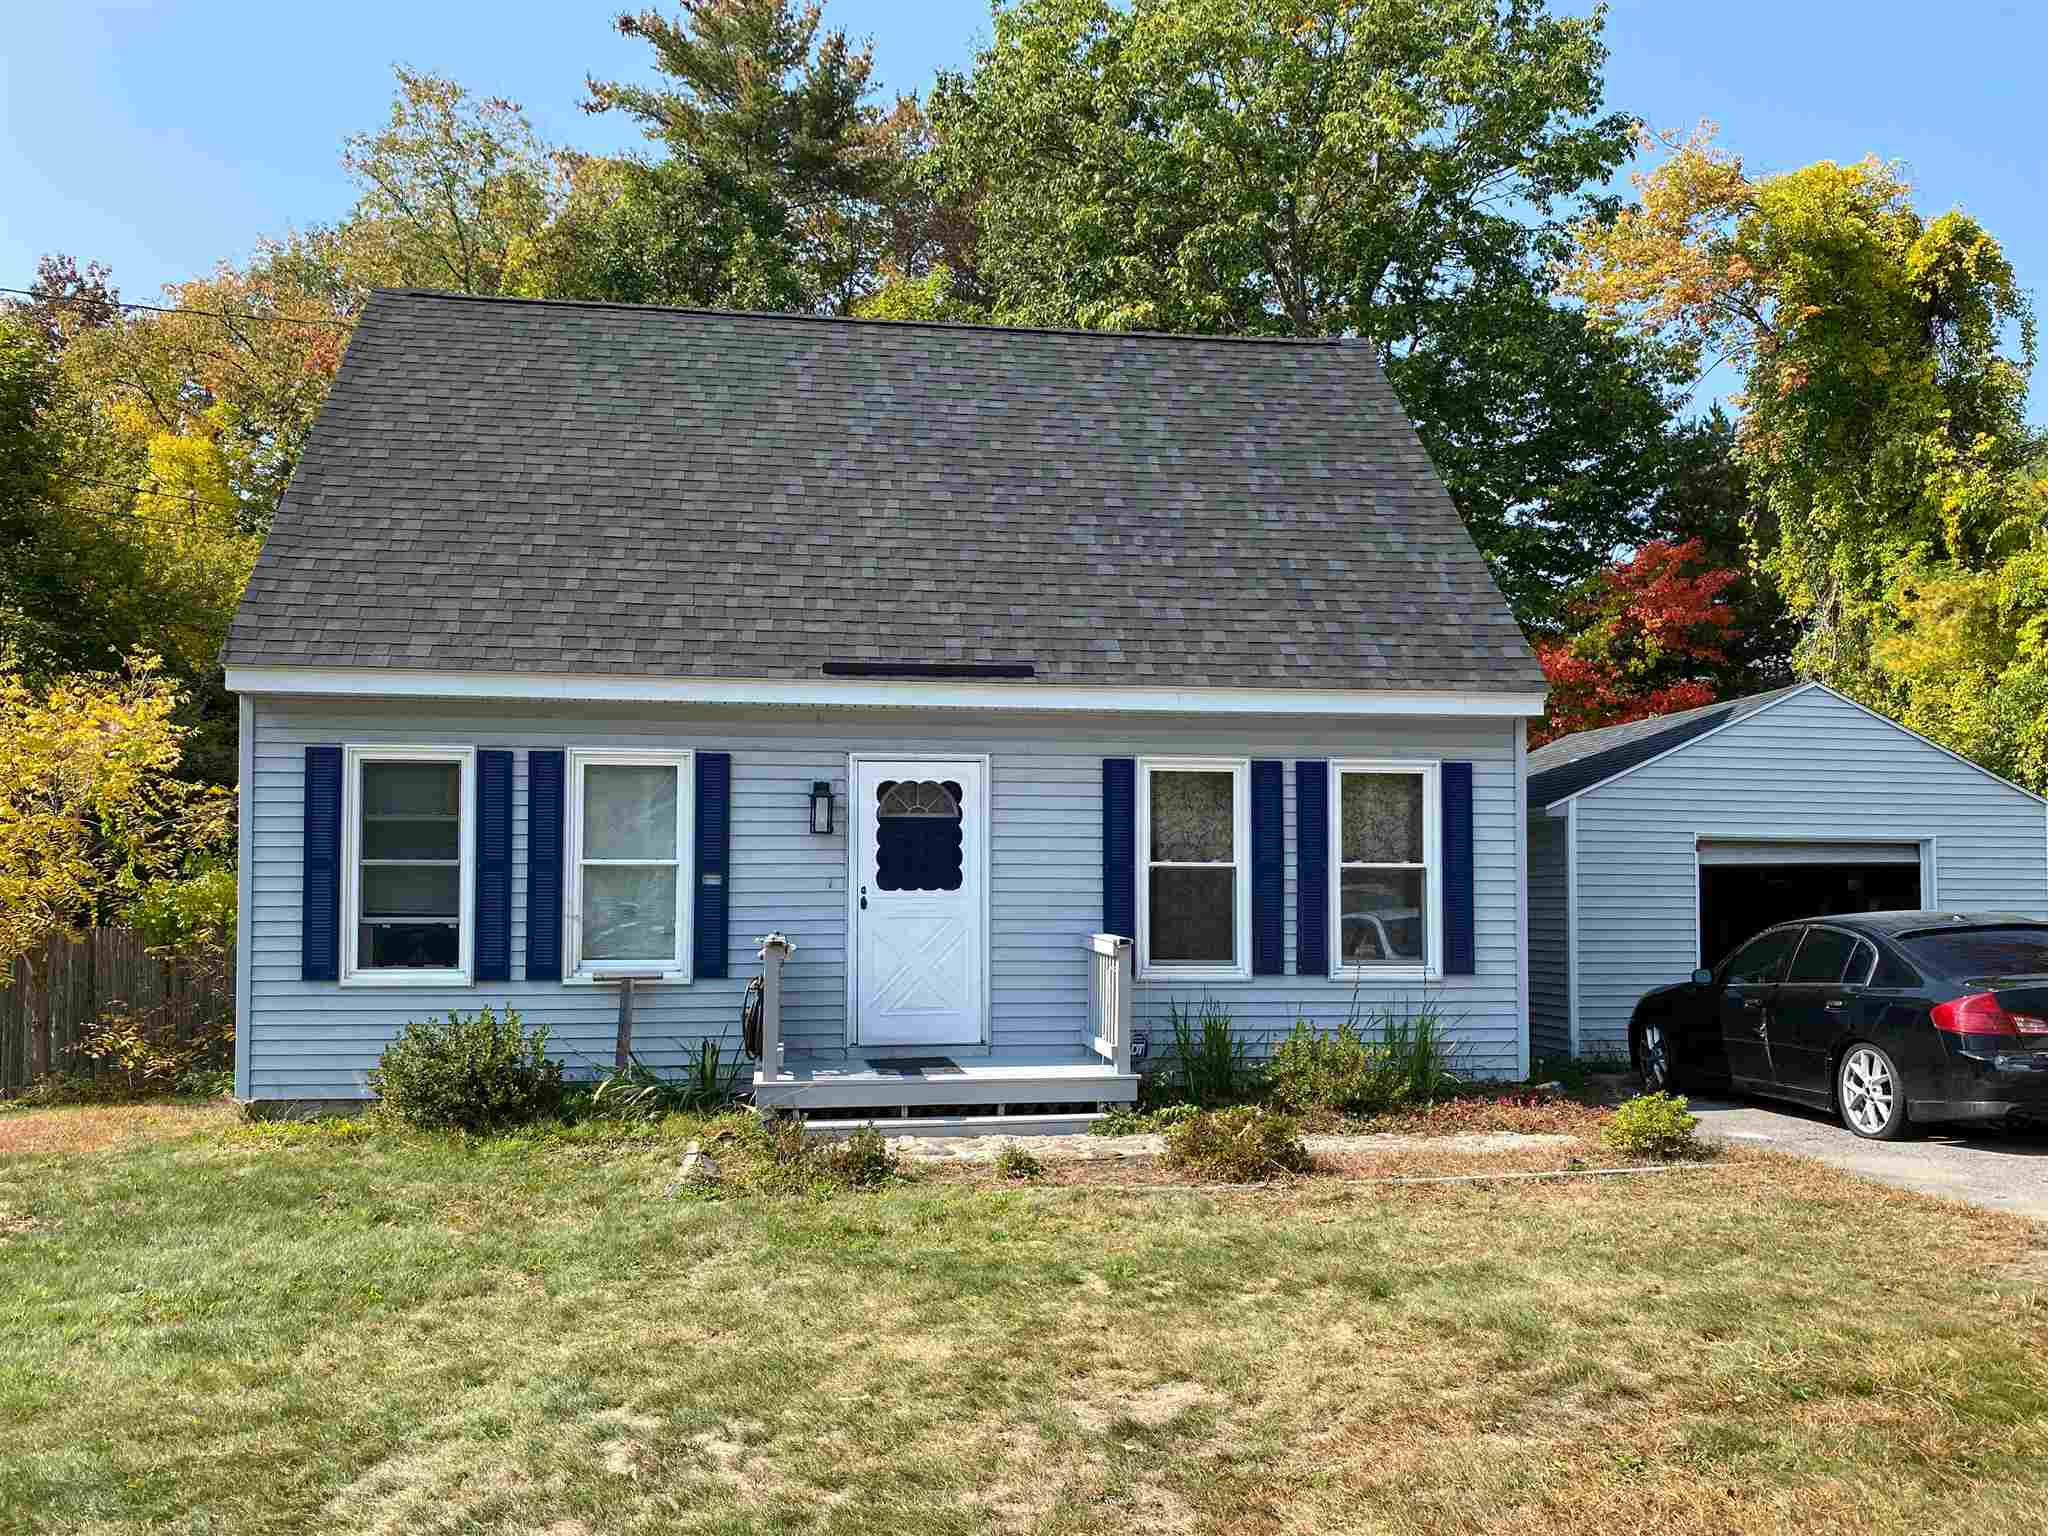 Photo of 180 Kendall Street Franklin NH 03235